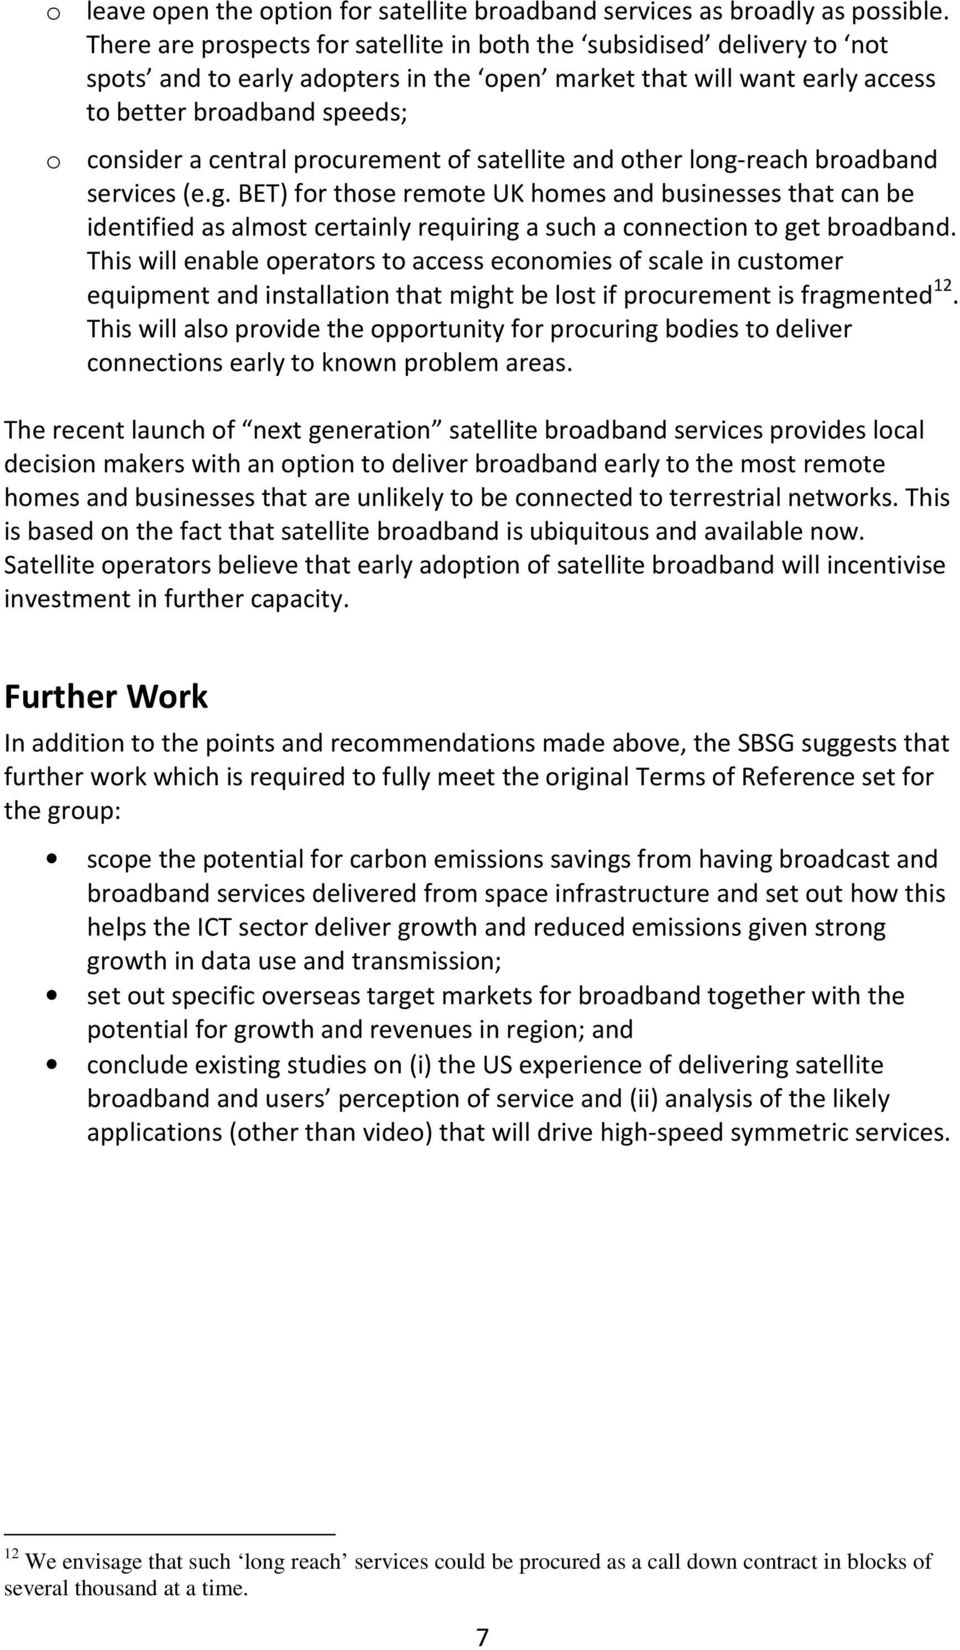 procurement of satellite and other long-reach broadband services (e.g. BET) for those remote UK homes and businesses that can be identified as almost certainly requiring a such a connection to get broadband.